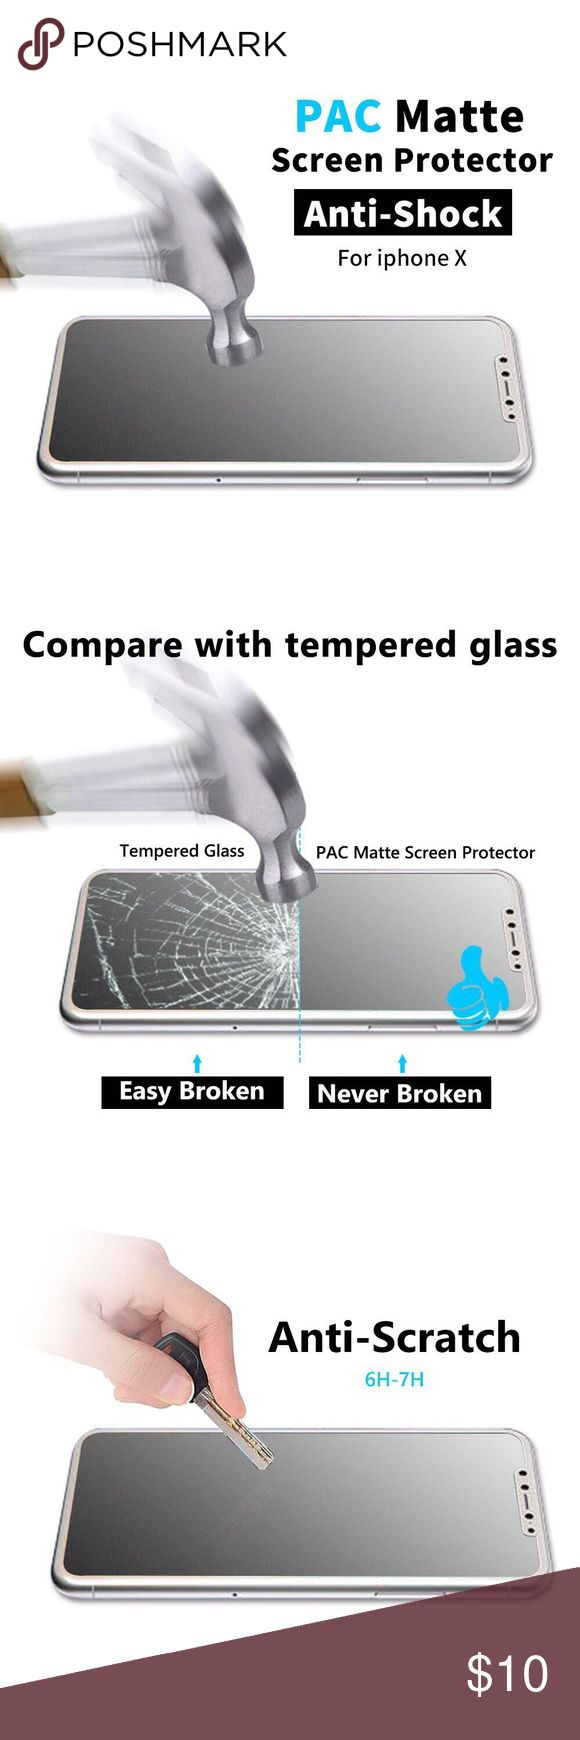 2Pcs For Apple iPhone X Screen Protector PAC Matte Screen Protector 2-PACK - iPhone X/10 Screen Protector Film-Ultra Clear Nano Matt Screen Protective Film Easy Install Anti-Glare Anti-Scratch Phone case friendly  Anti-finger print  Anti-Shock.  Thick 0.2mm. Bendable: 360  Silicon Glue and Automatic Adsorption.  Fastly Remove Bubbles  PAC Matte Screen Protector.  https://youtu.be/PG-PyTr5ppQ PAC MATTE Other